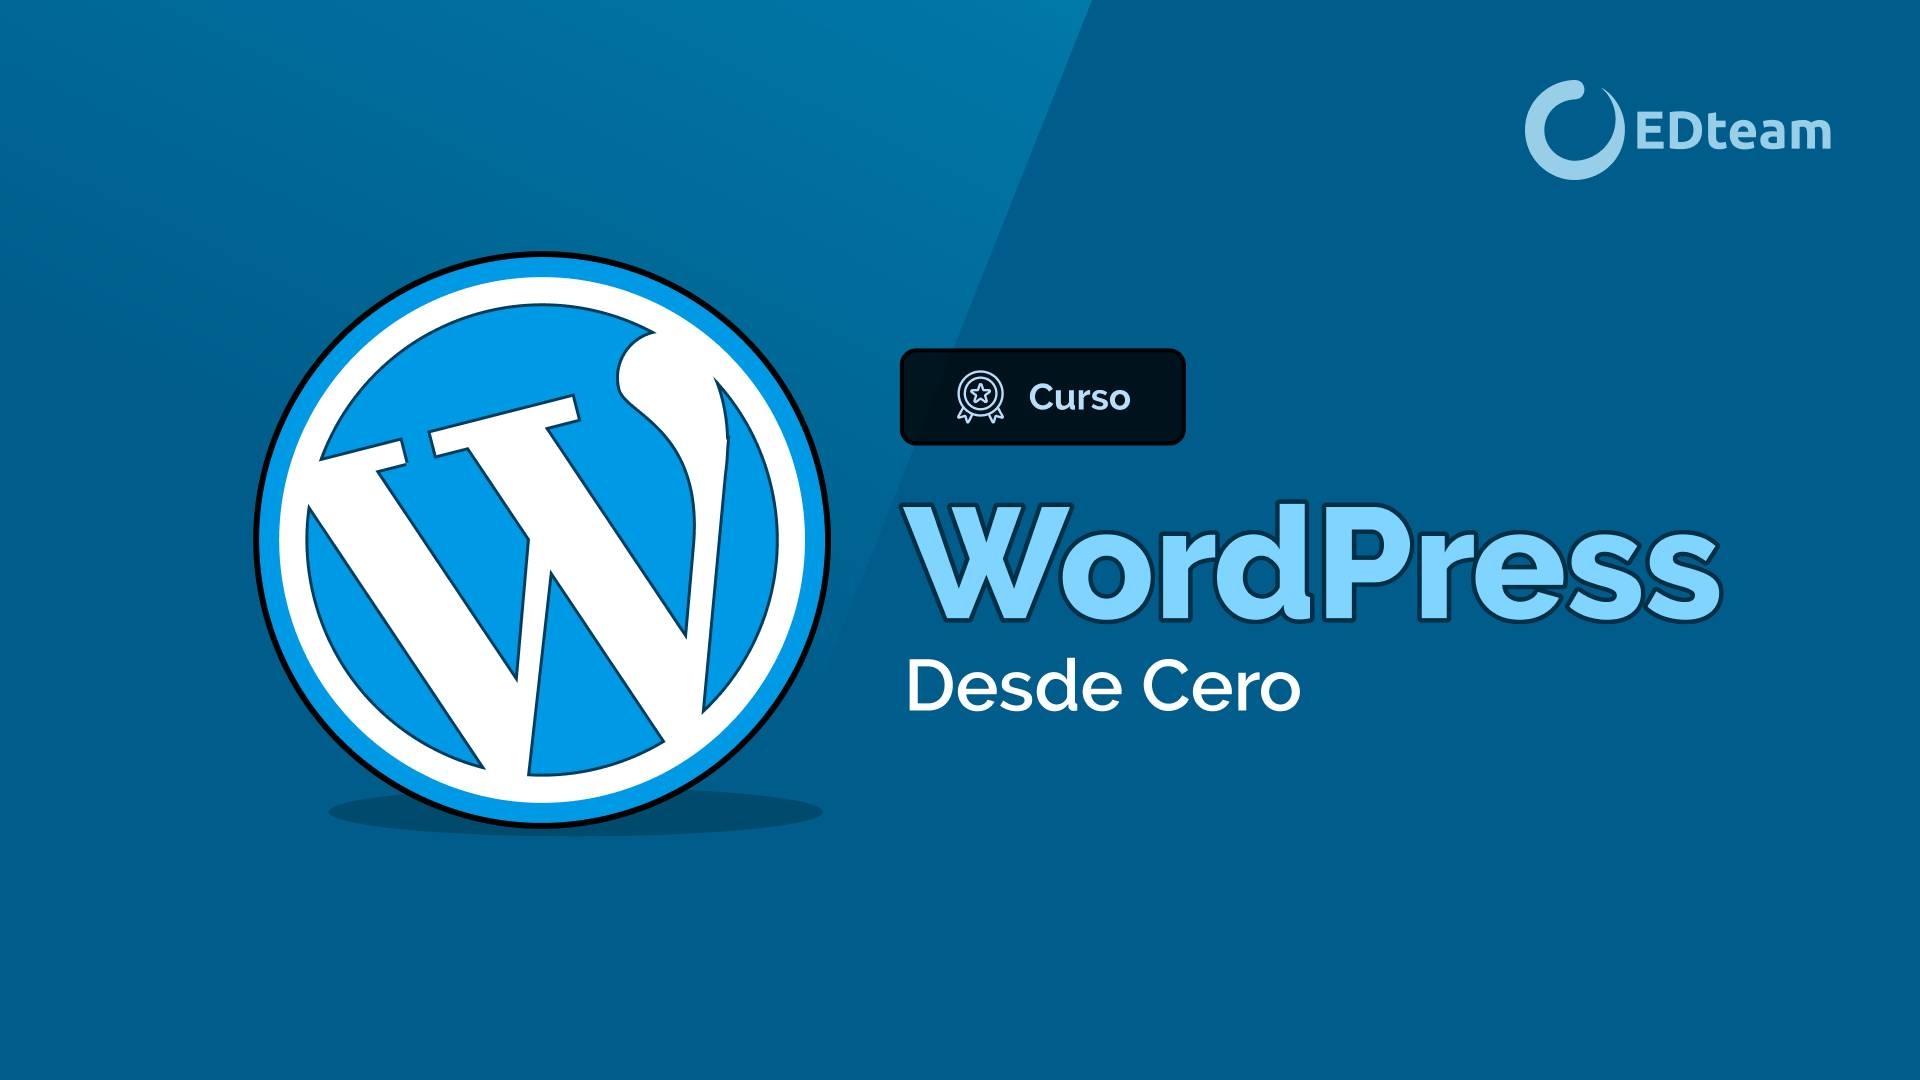 Diferencias entre WordPress.org y WordPress.com ¿Cuál elegir?